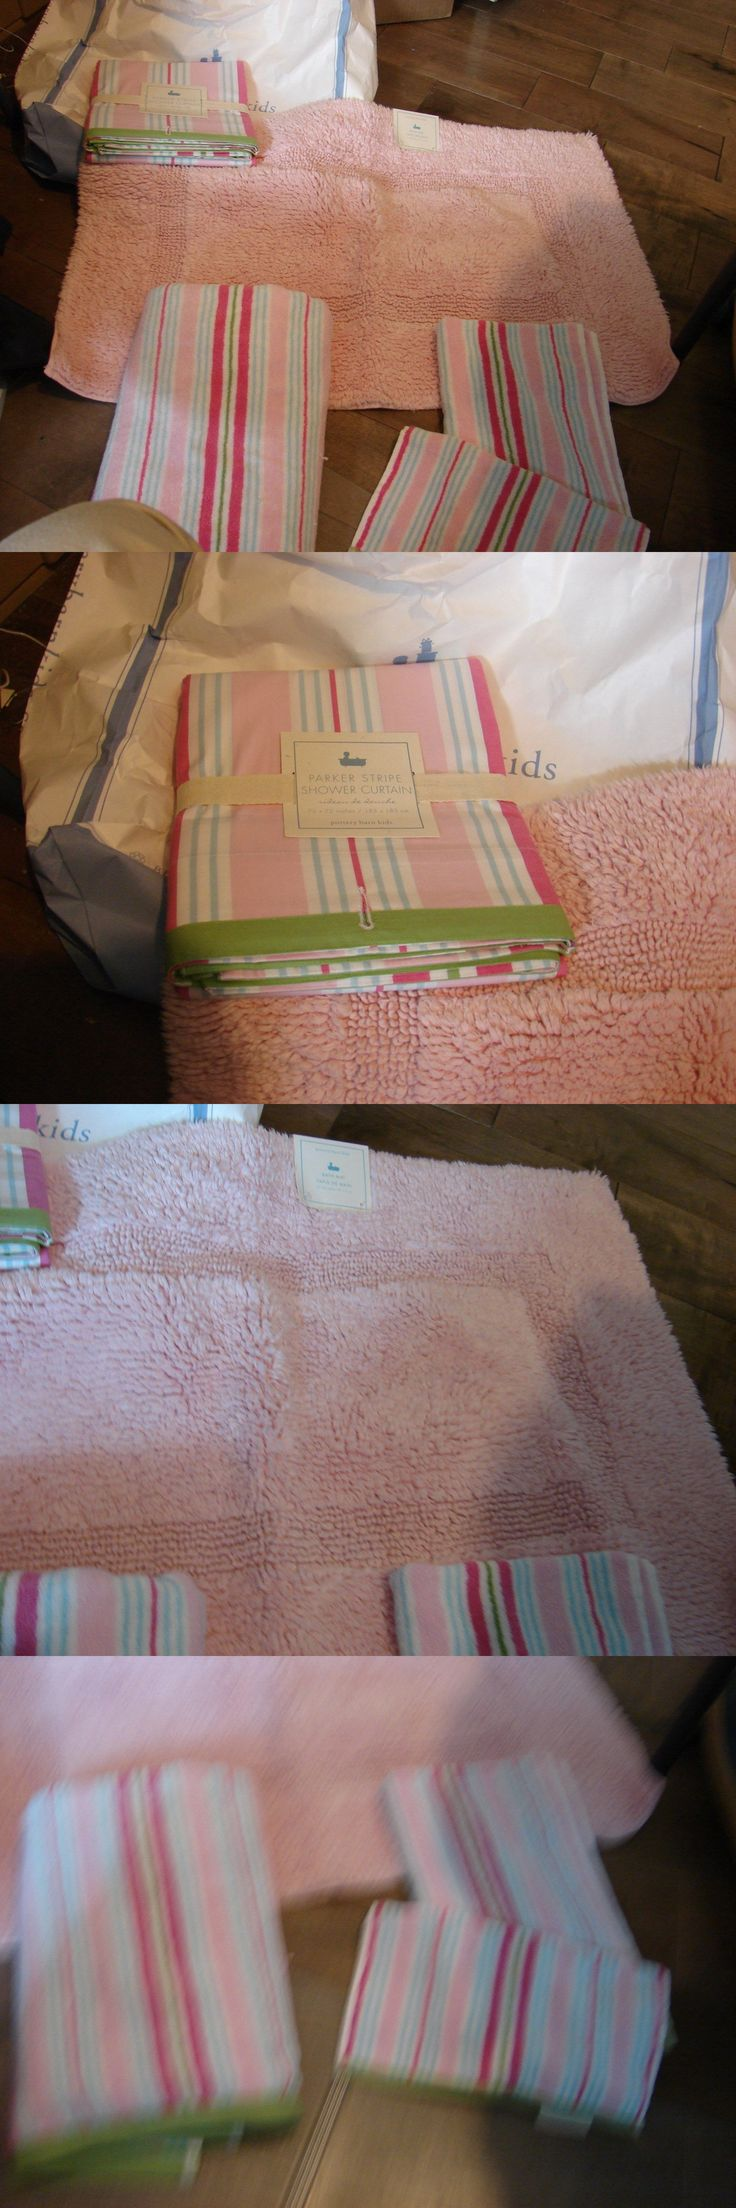 best 25+ pink bath mats ideas on pinterest | cream bath mats, girl